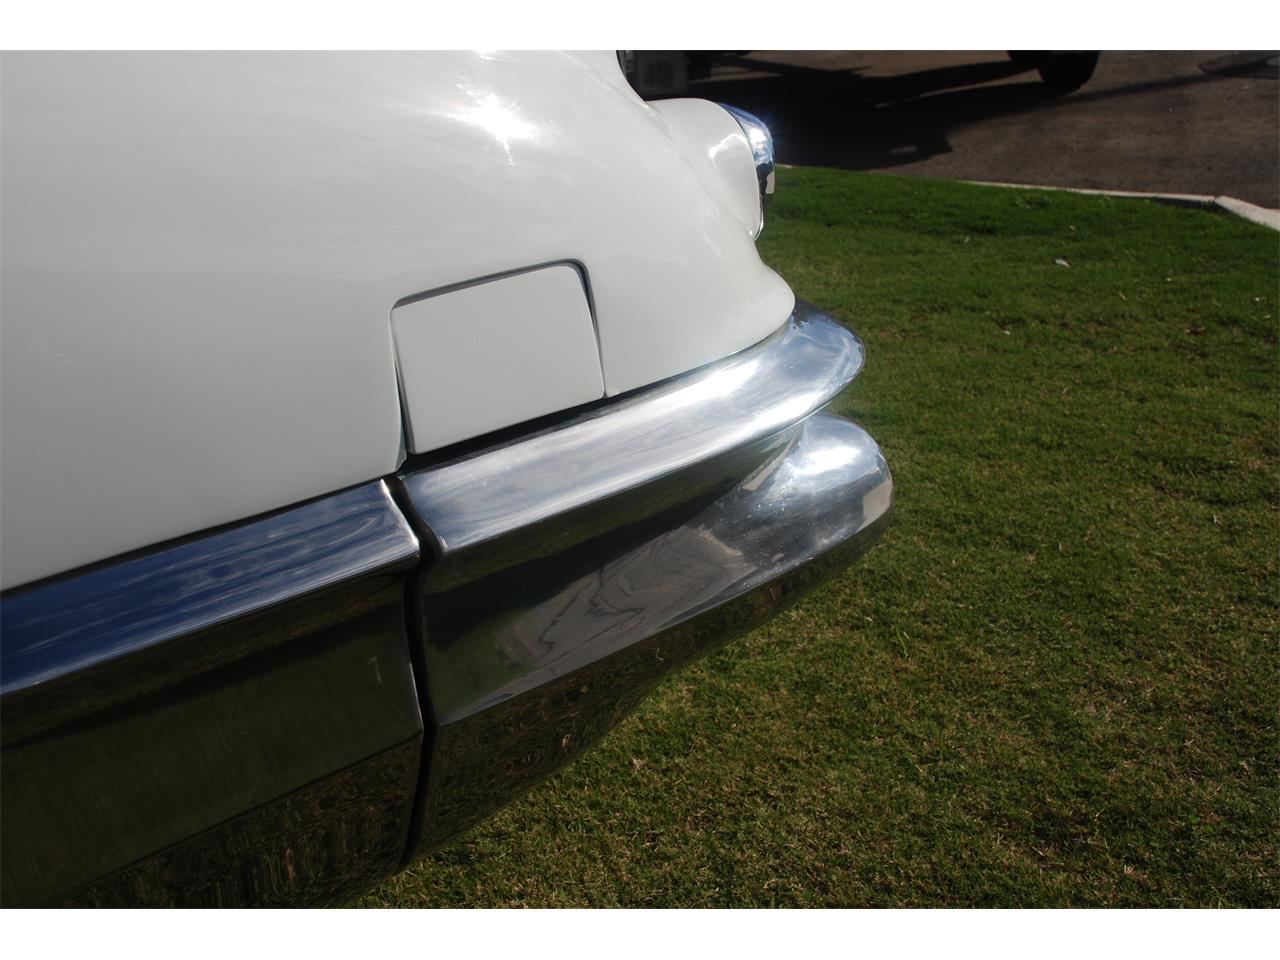 Large Picture of 1957 Cadillac Eldorado Biarritz - $120,000.00 Offered by a Private Seller - I9YC